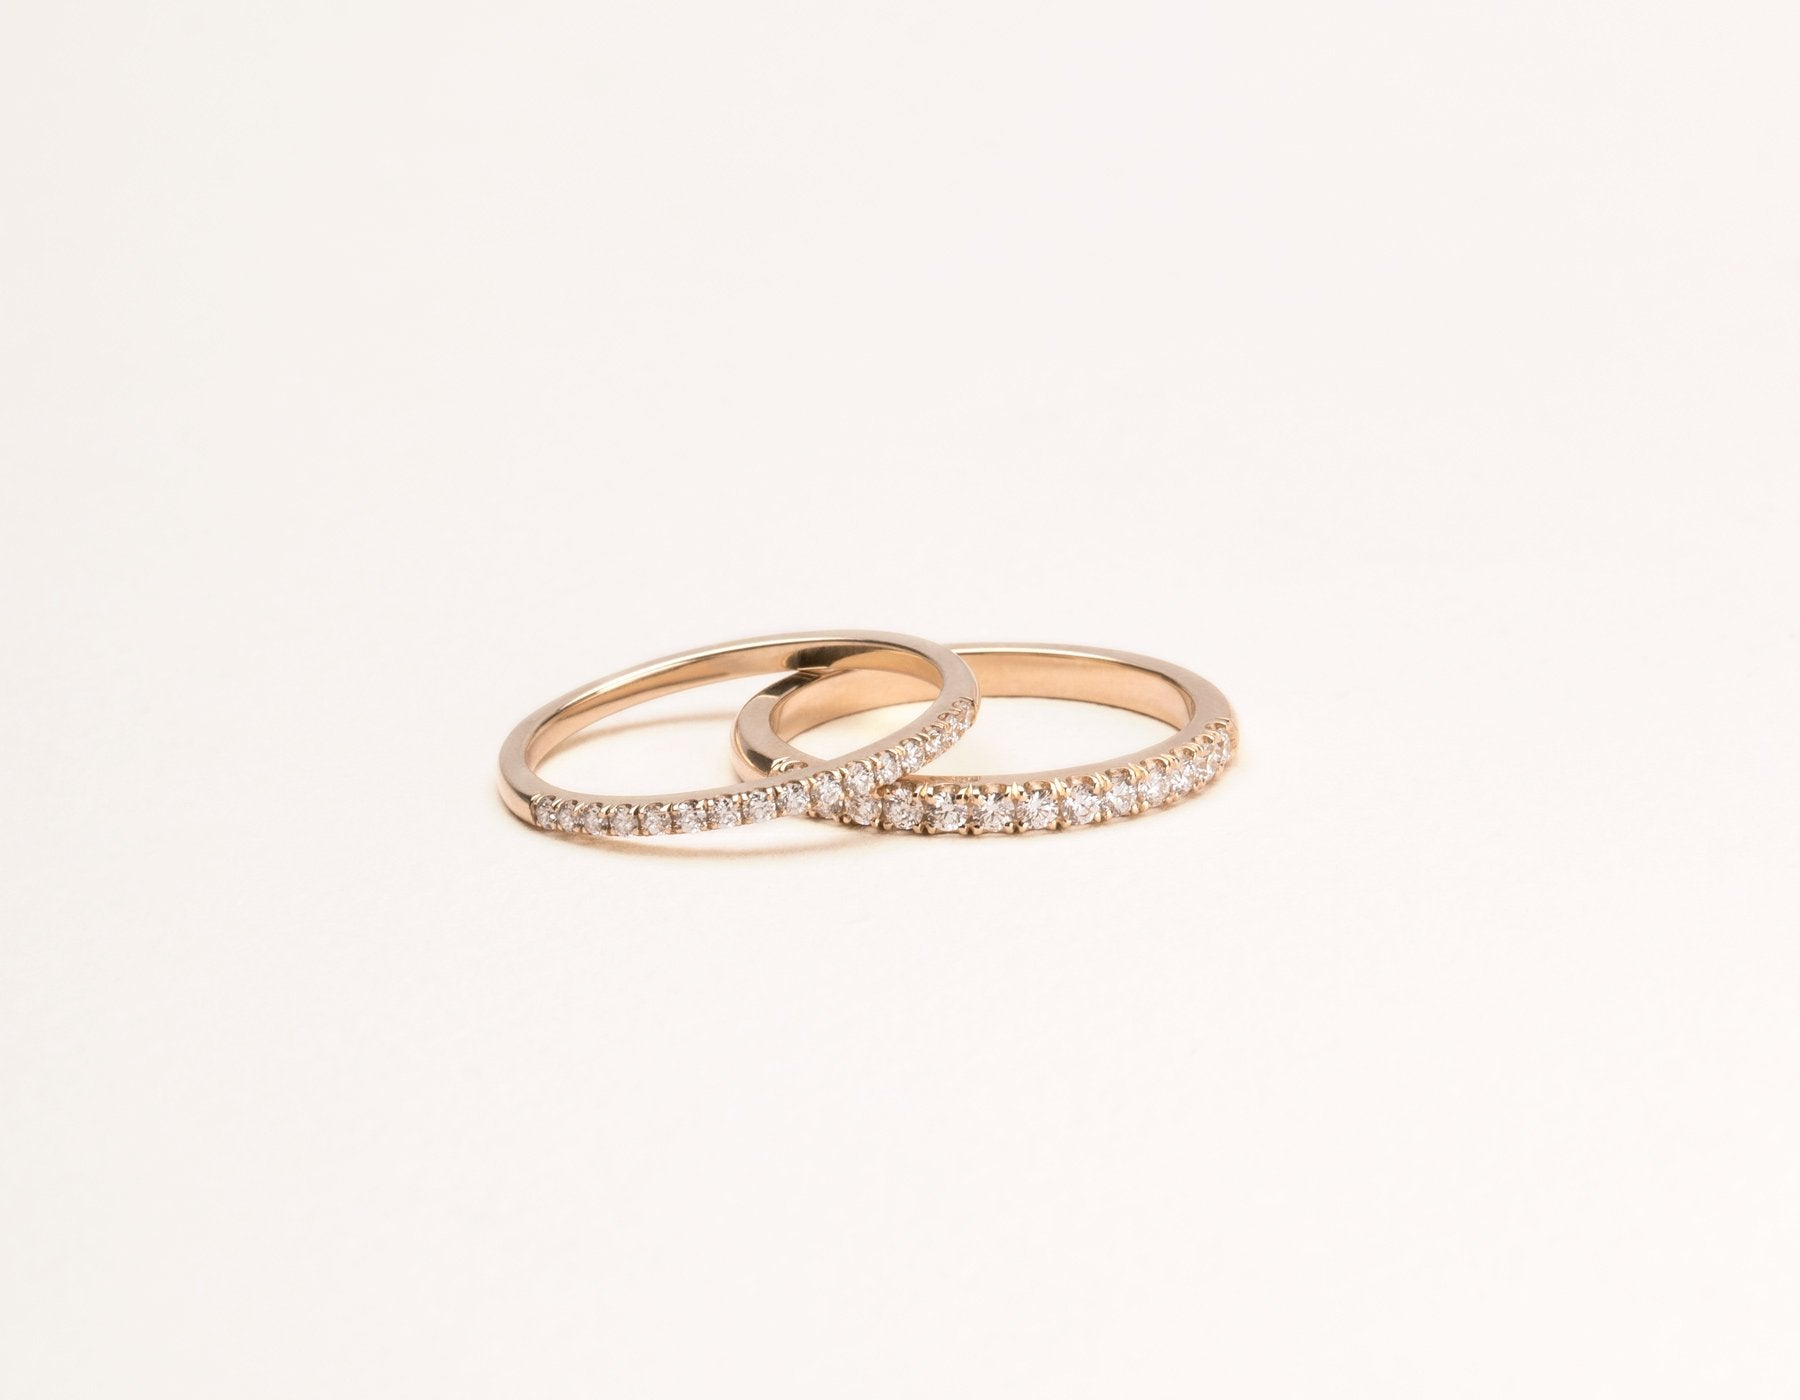 Classic minimalist Large Diamond Pave Band ring pair Vrai & Oro sustainable jewelry, 14K Rose Gold